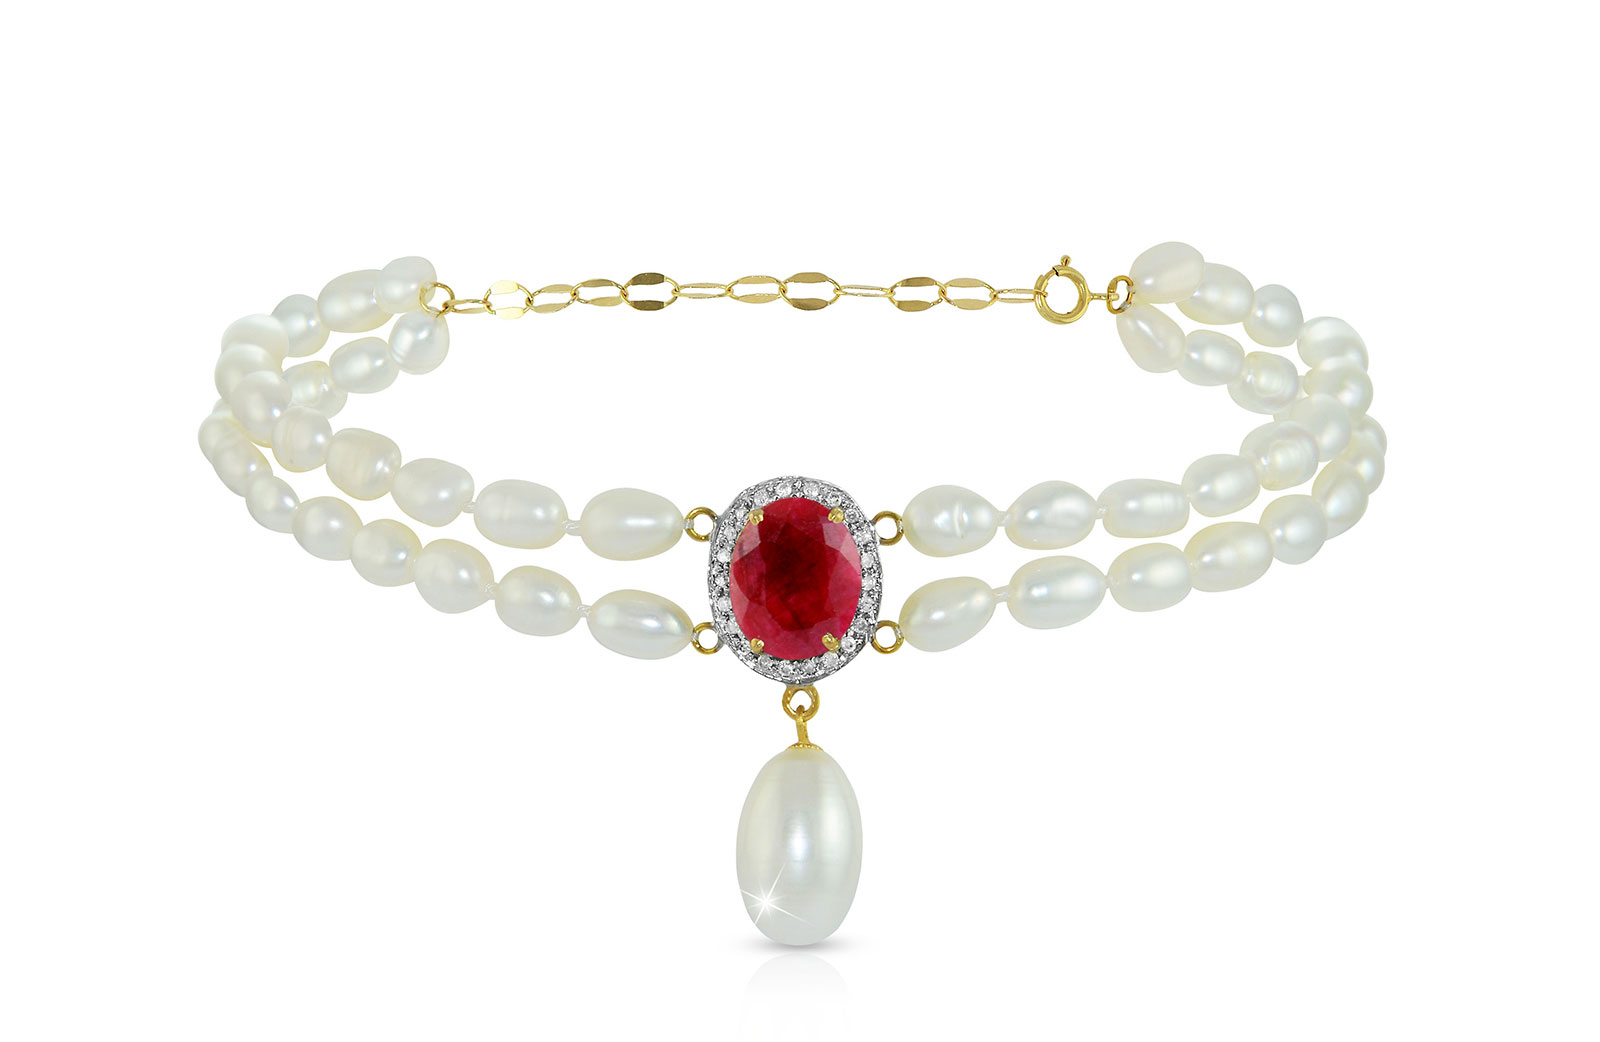 Vera Perla 18K Gold 0.12ct. Diamonds, Oval Ruby & Pearl Bracelet